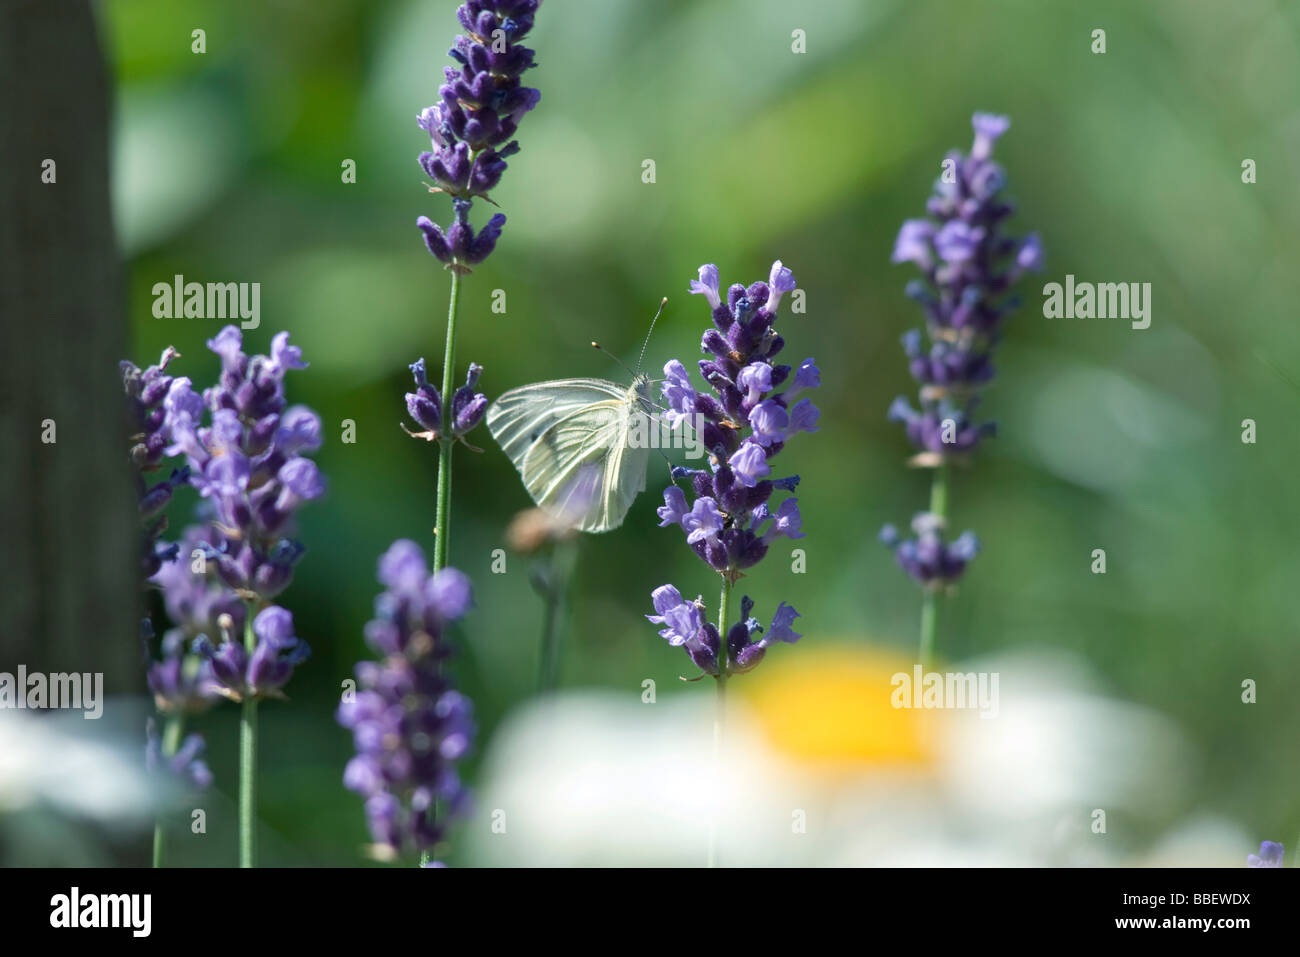 Small butterfly on lavender flowers - Stock Image